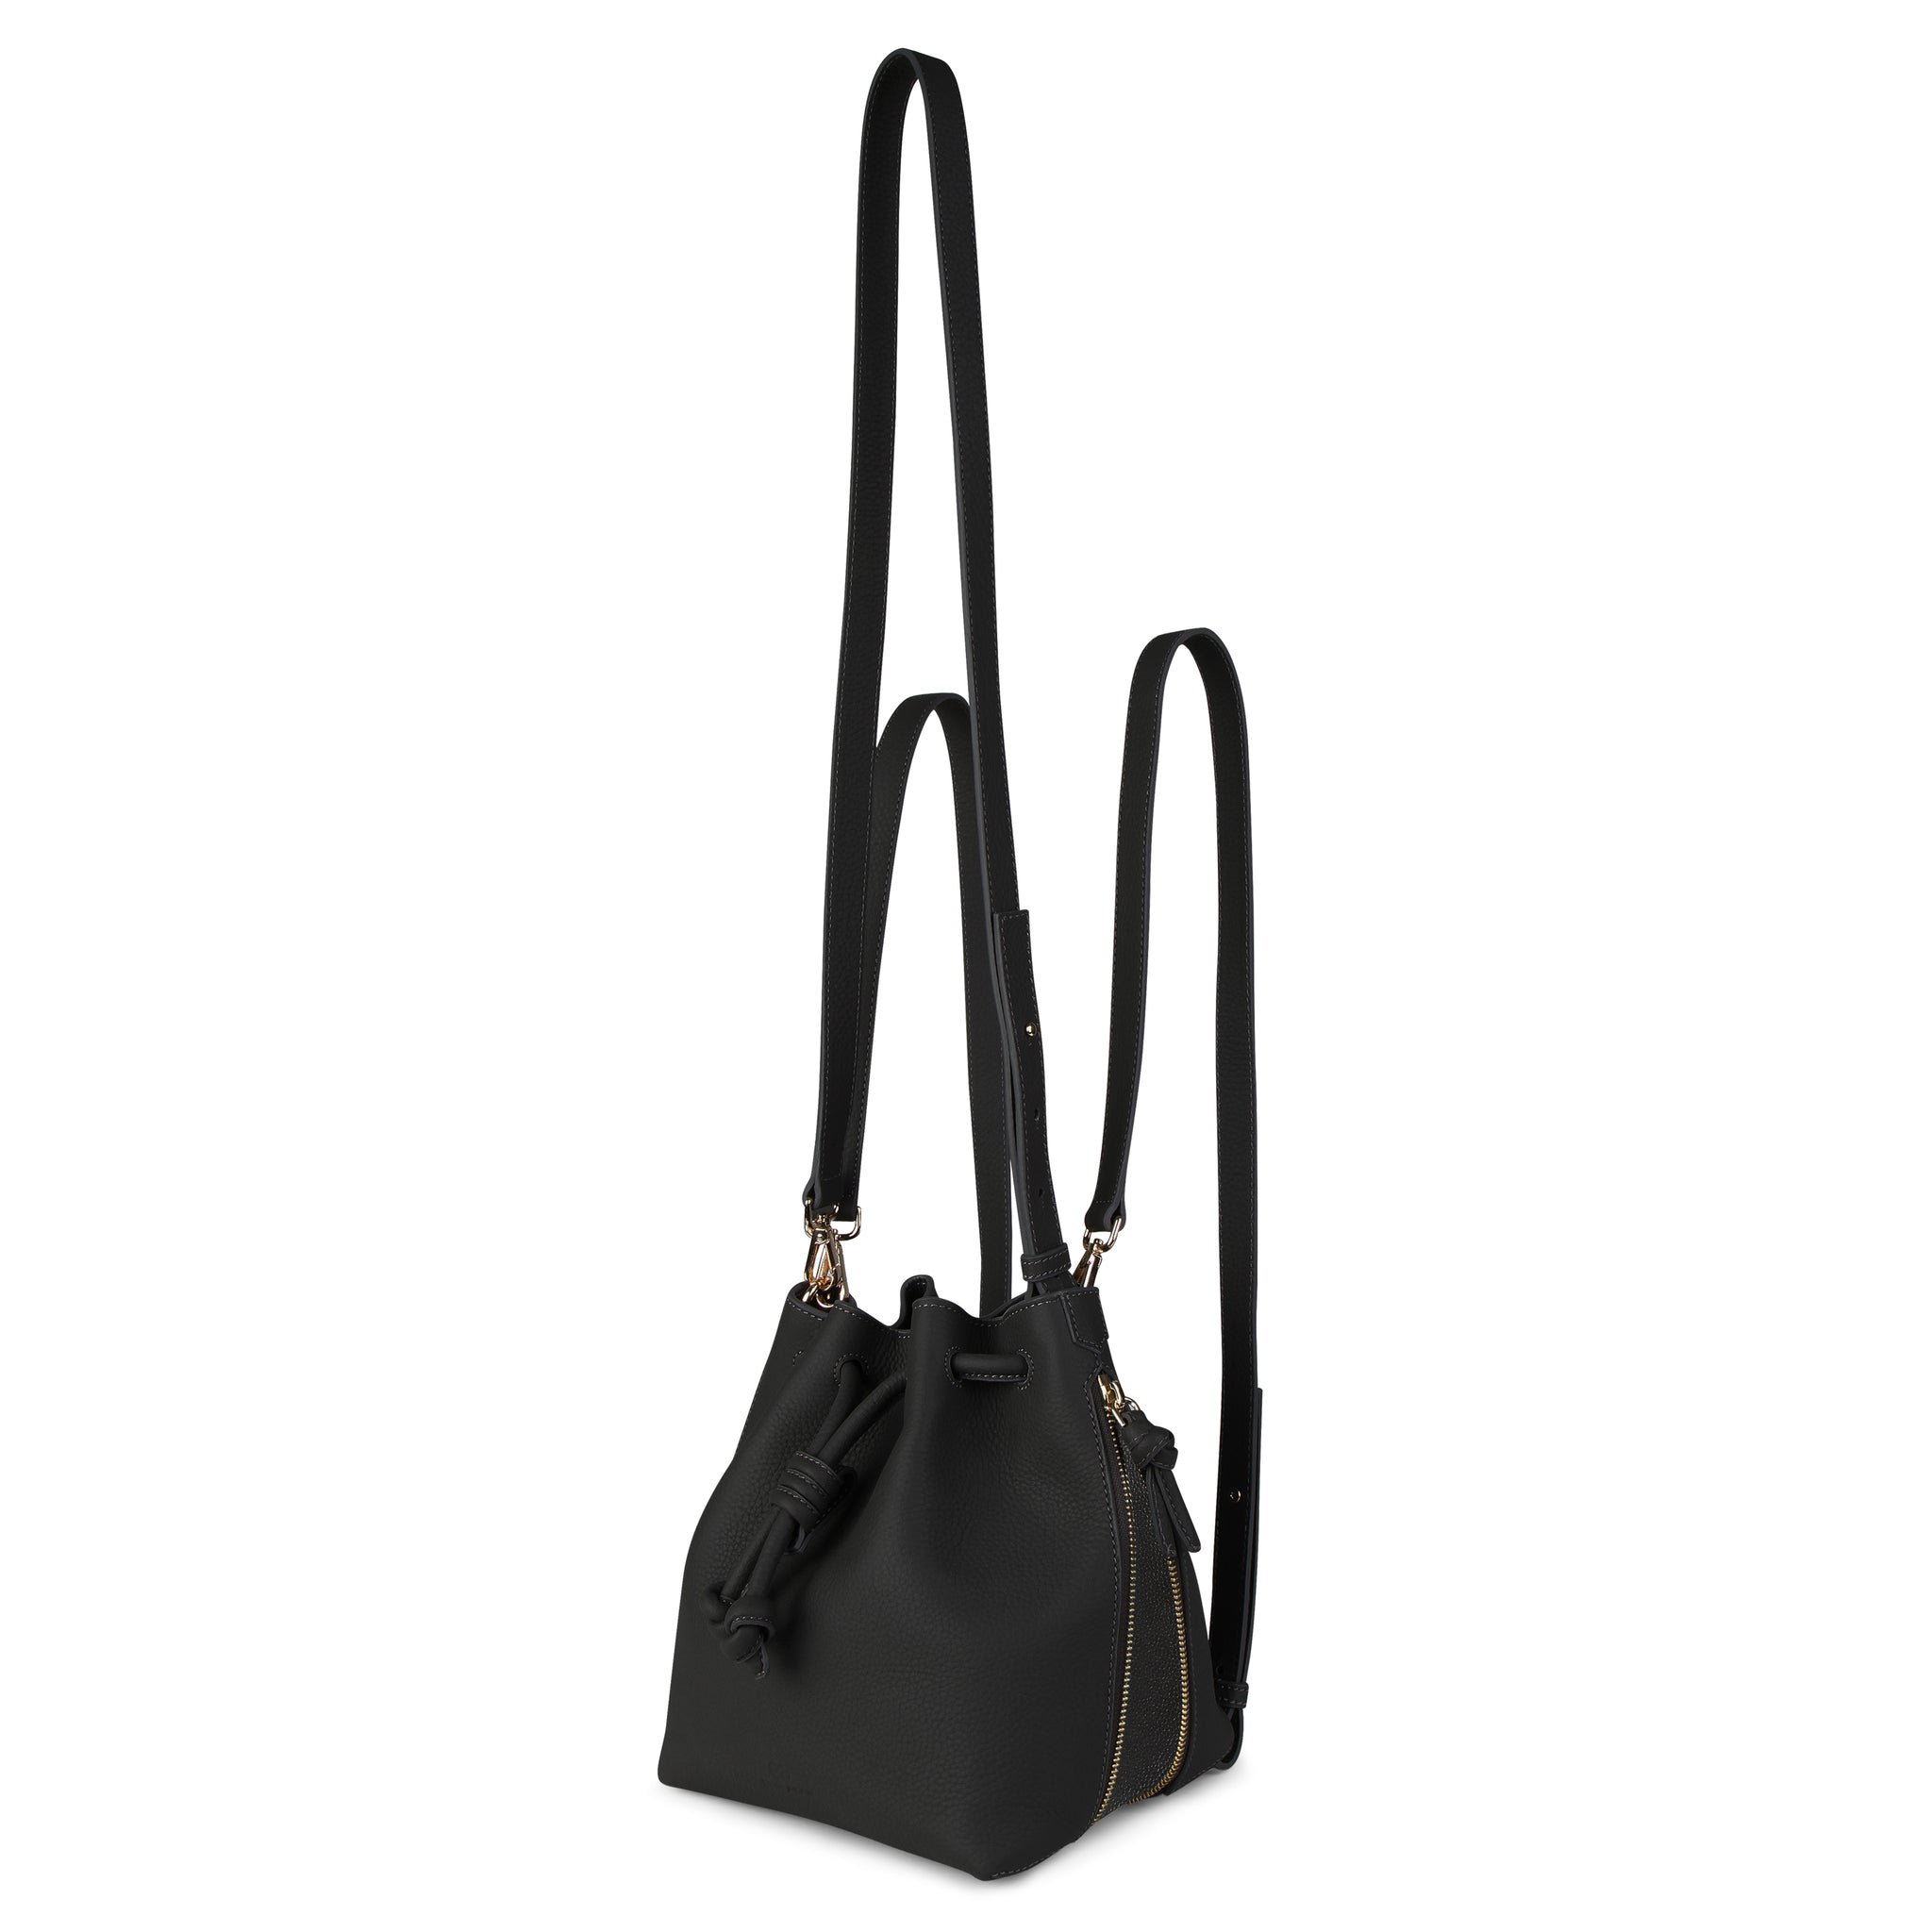 A convertible medium leather black and sparkly black bucket crossbody bag that could be used as a backpack, front image.